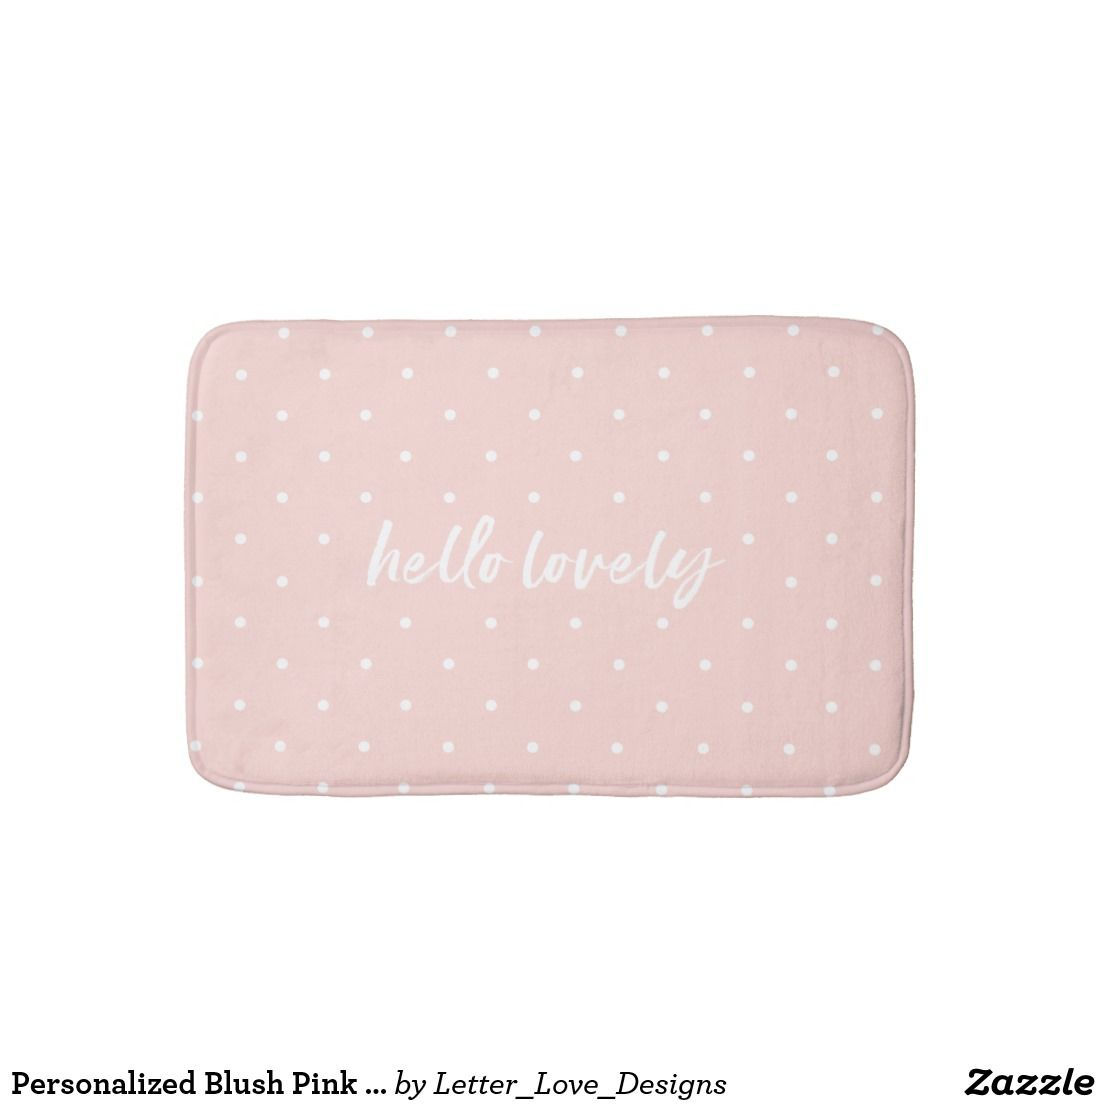 personalized blush pink bath mat small polka dots bath mat rugs